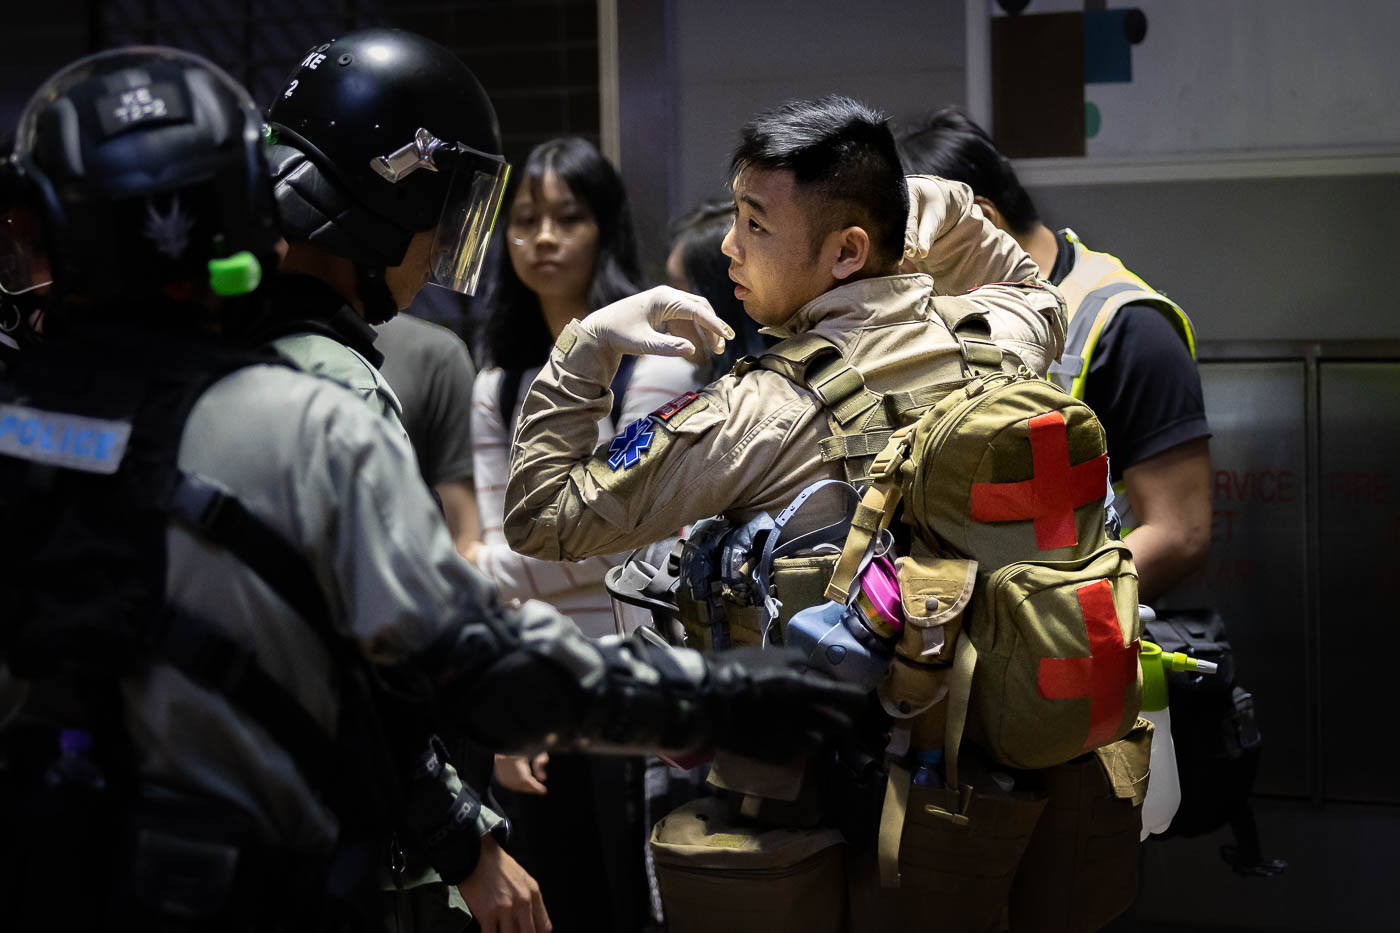 EMT is detained and searched by Hong Kong Police.